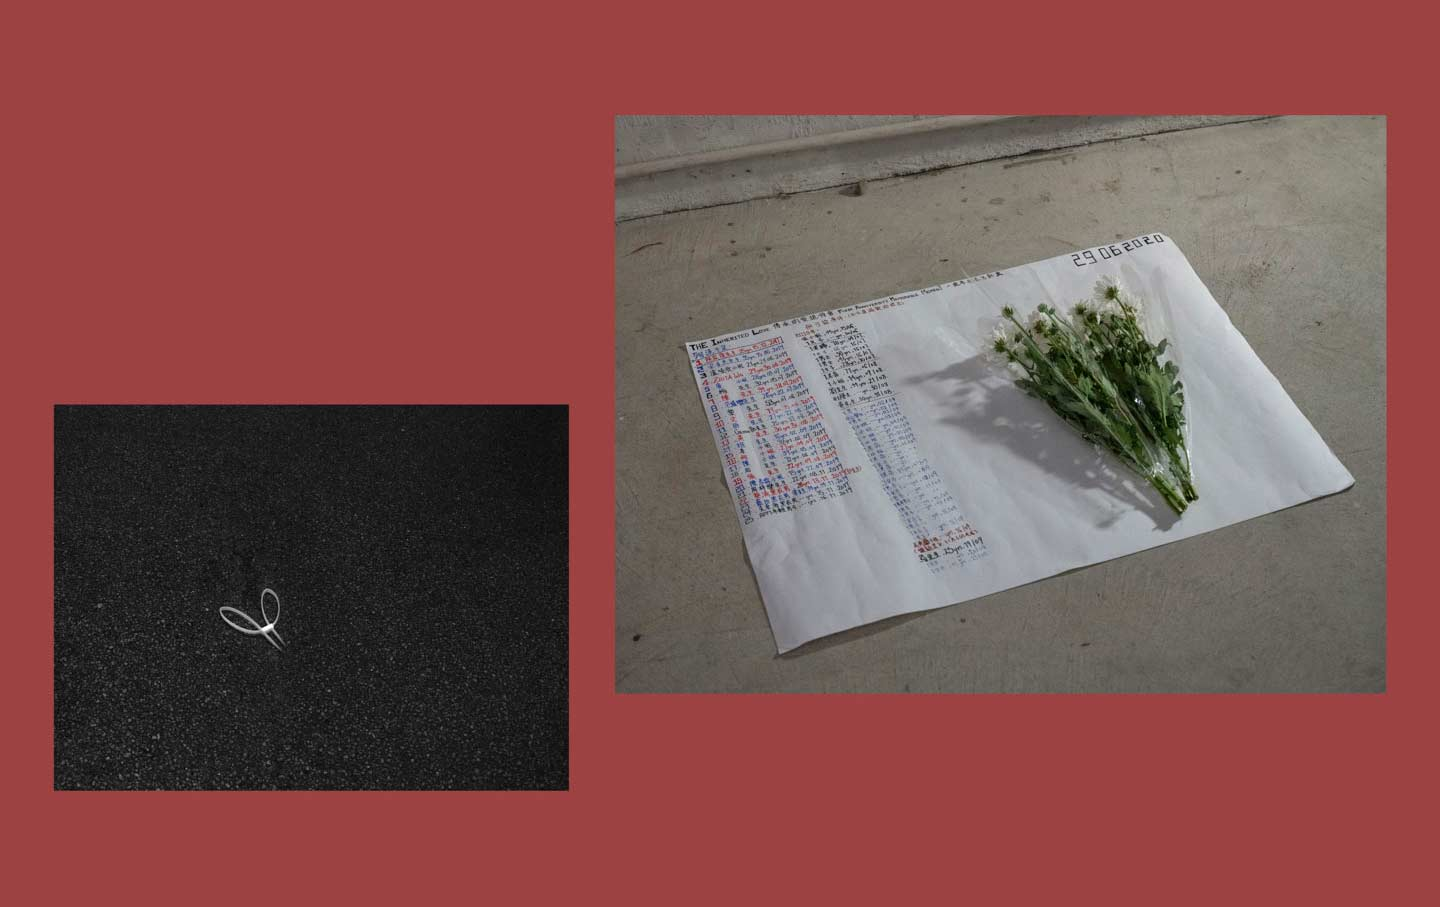 Hong Kong's Protesters Are Writing Their 'Last Letters'